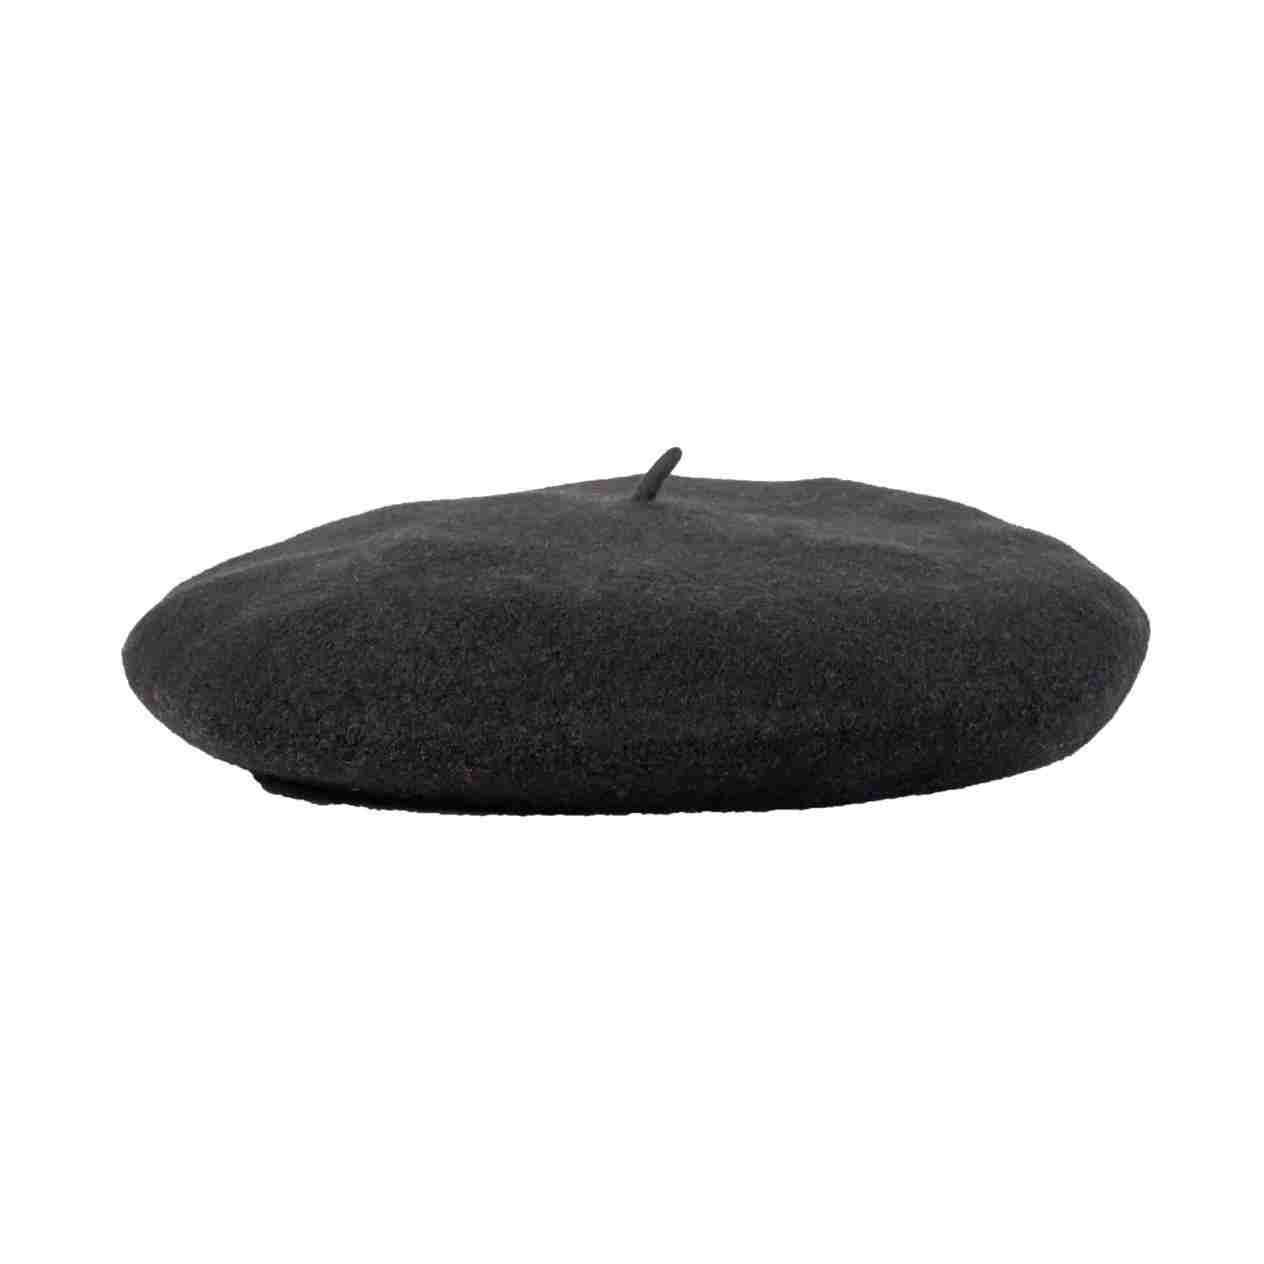 Black Beret Hat Near Me - whorled beret with ear flaps in red or black. 5a268038081